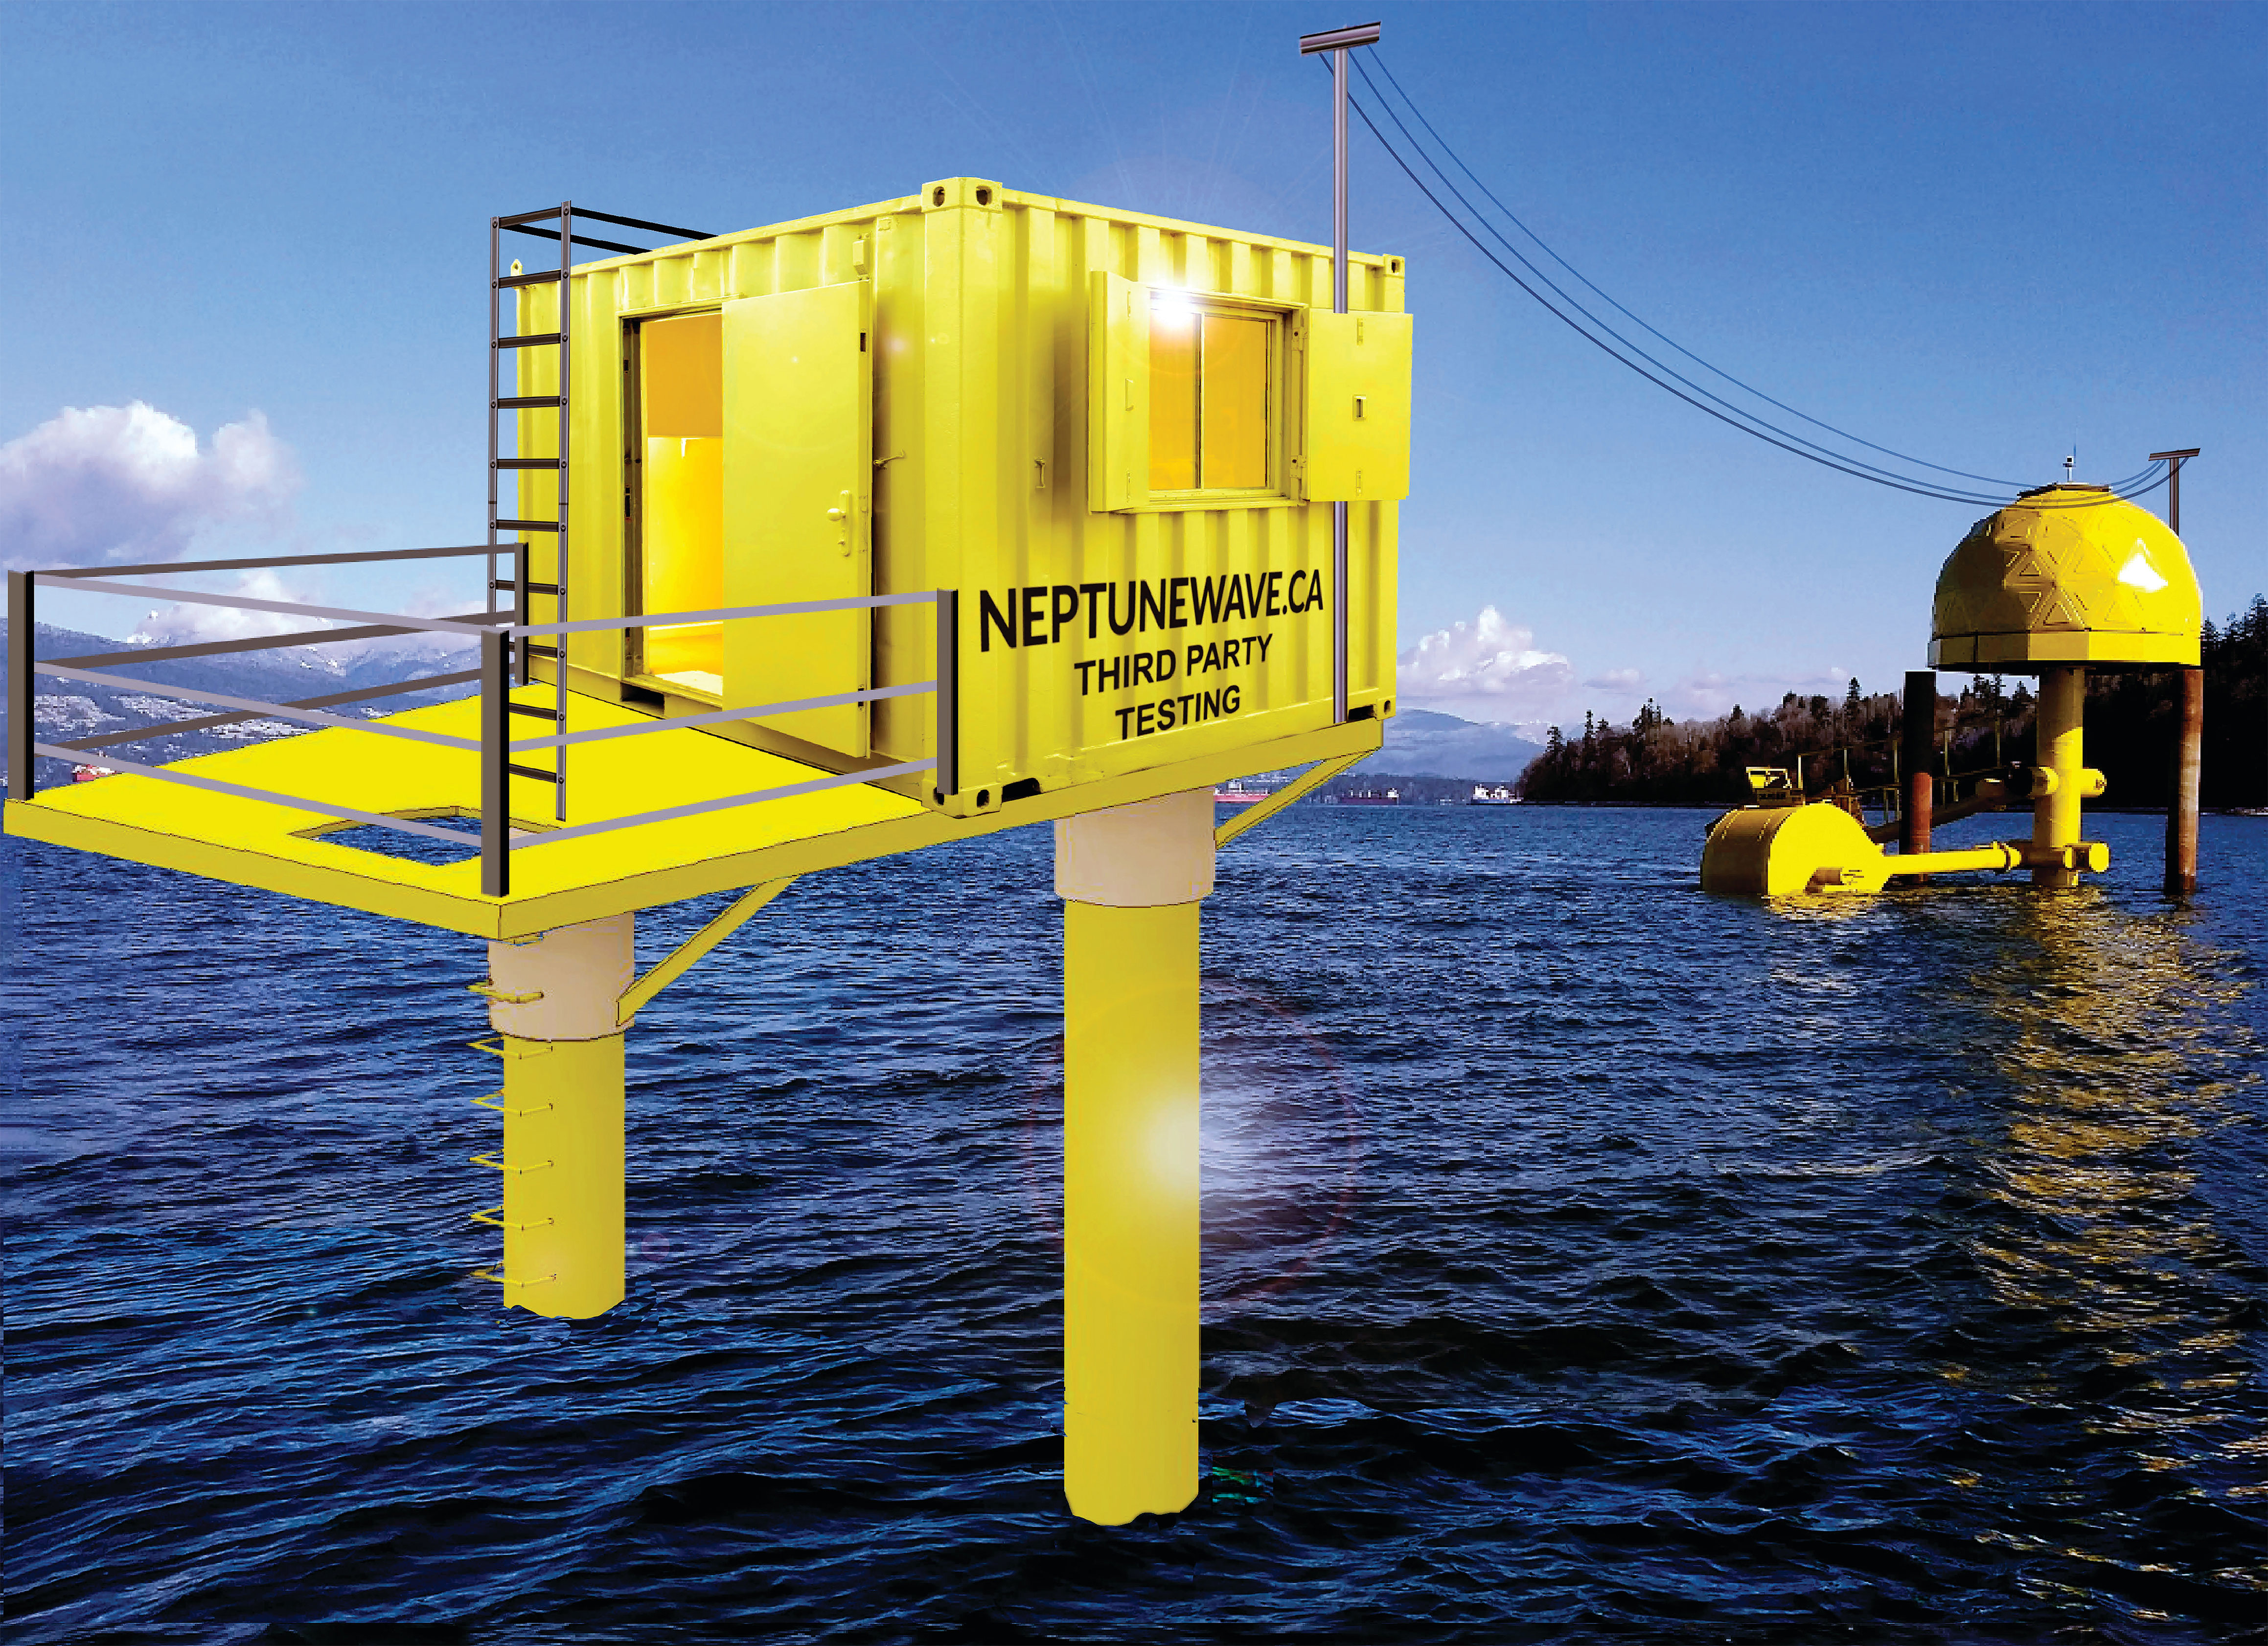 NeptuneWave-1-A-Test-Room-Container-with